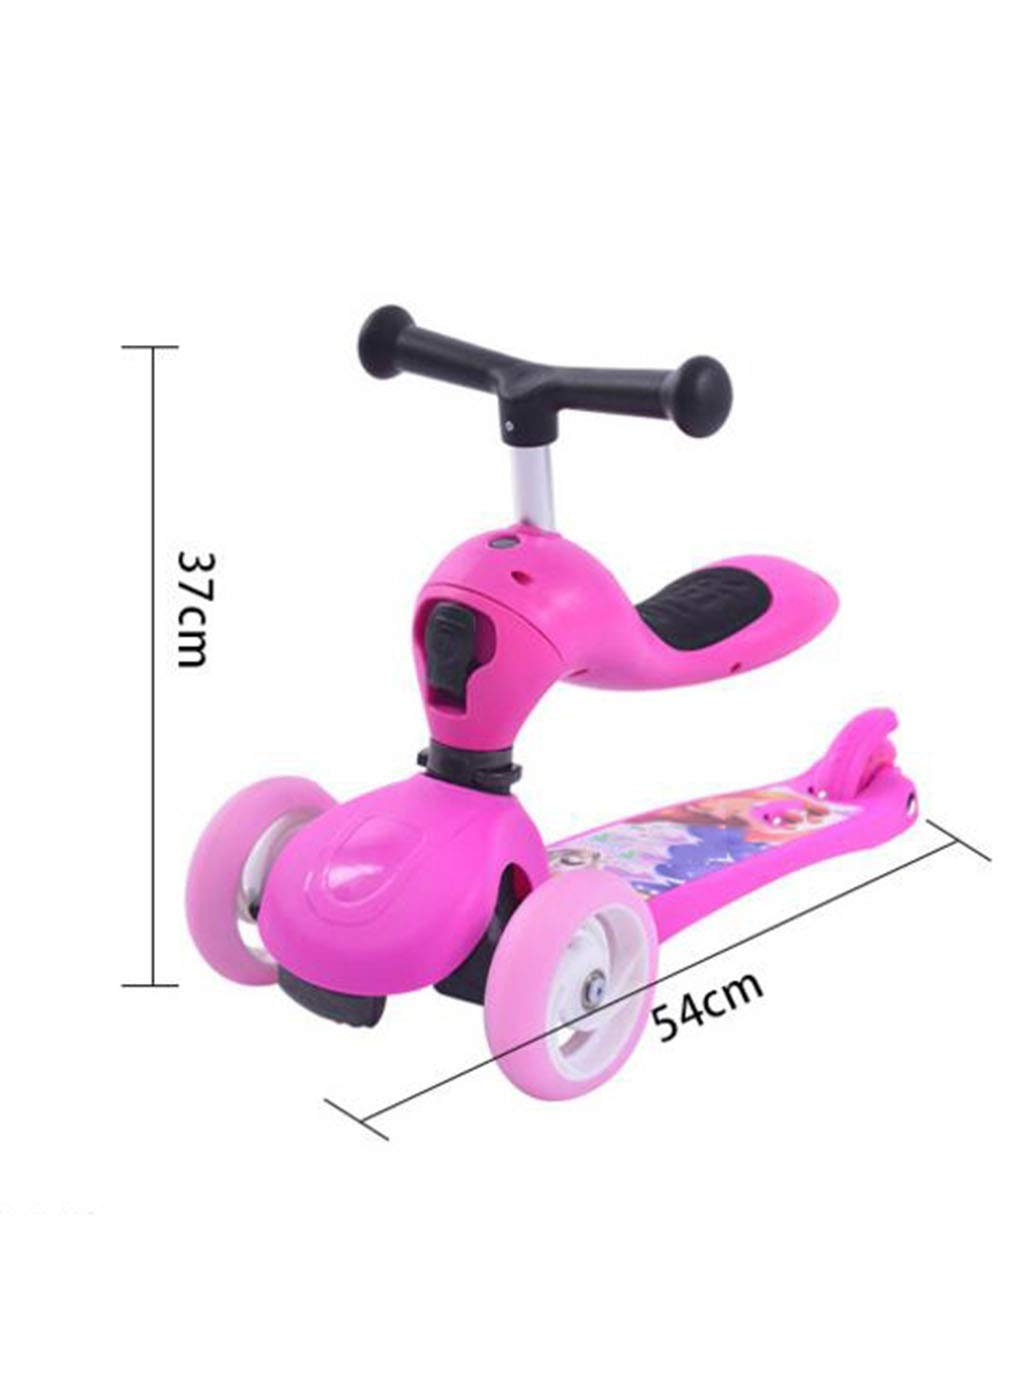 Children's scooter kick scooter children's kids 3 wheel scooter, 3 in 1 super wide wheel kids scooter with detachable seat, adjustable height handle, scooter children boys and girls 1 or more children by JBHURF (Image #3)